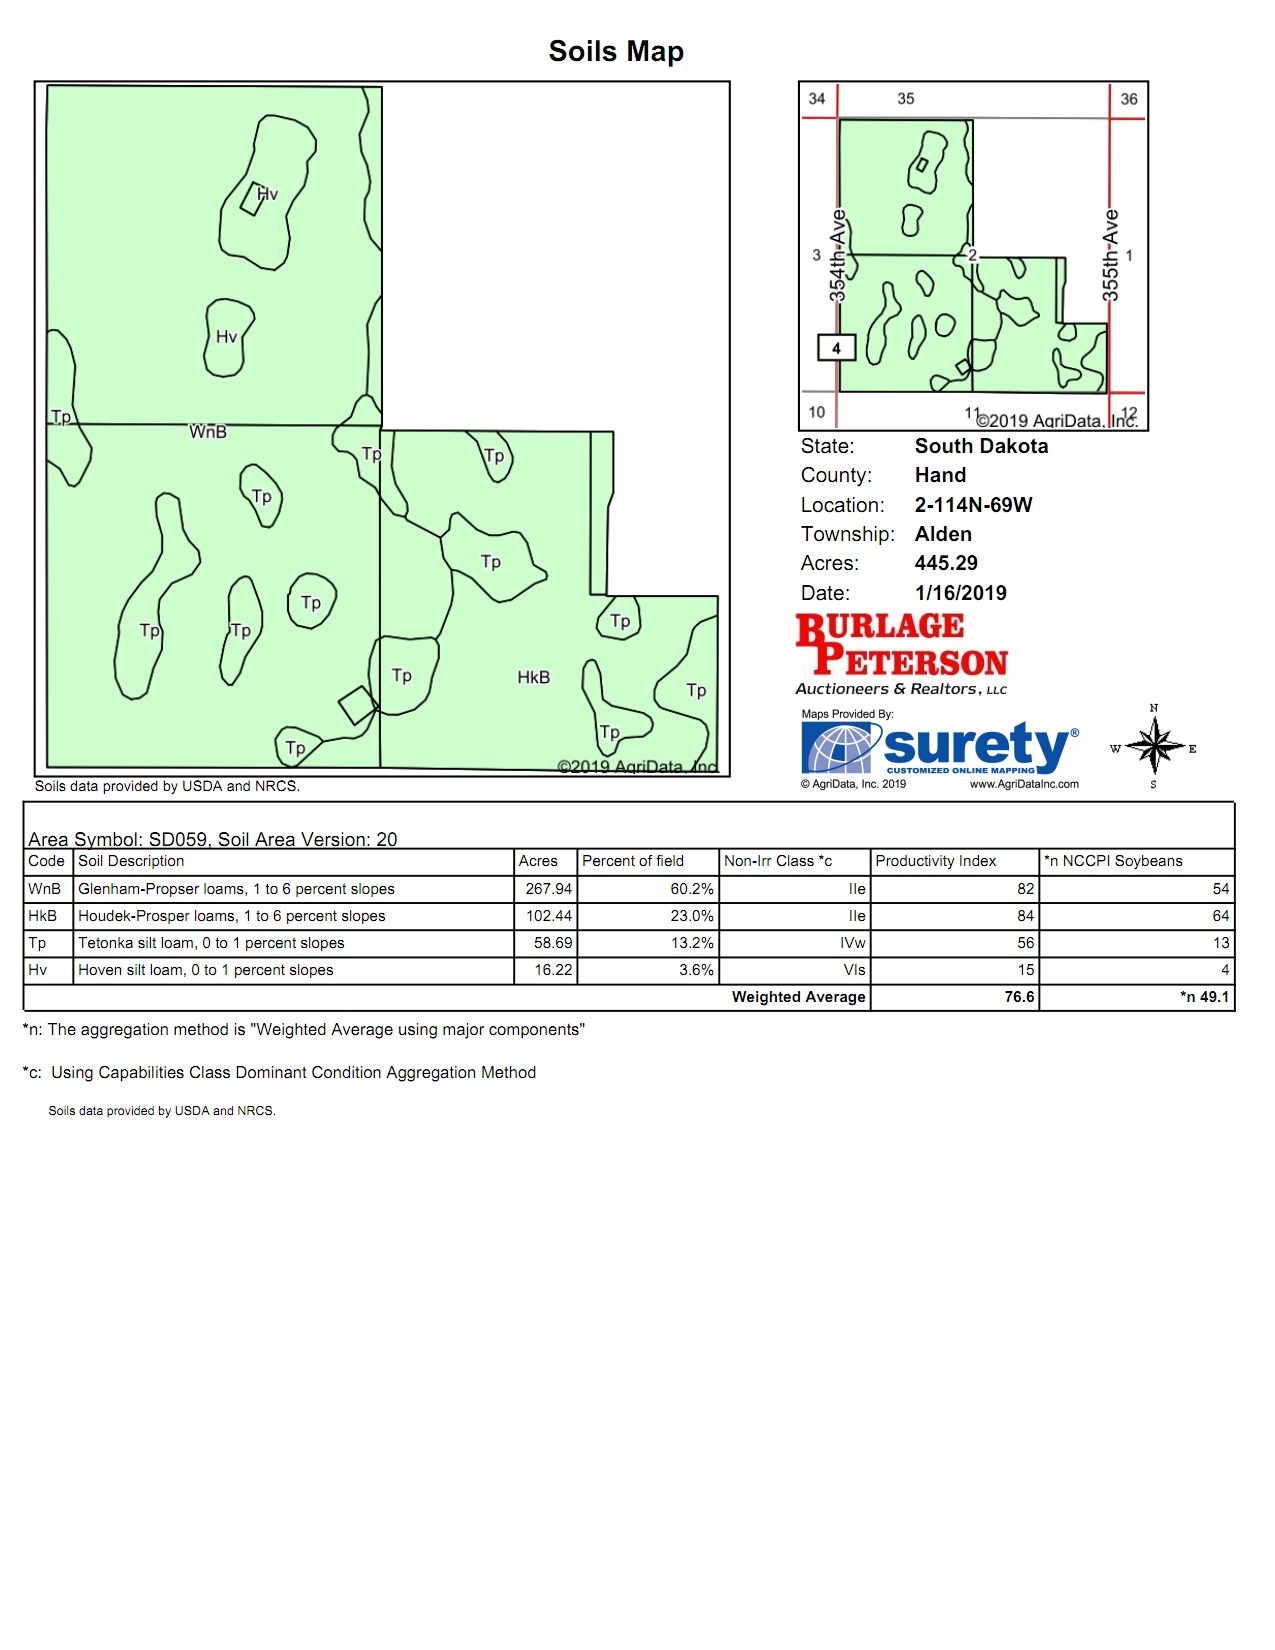 Tract 1 Soil Map